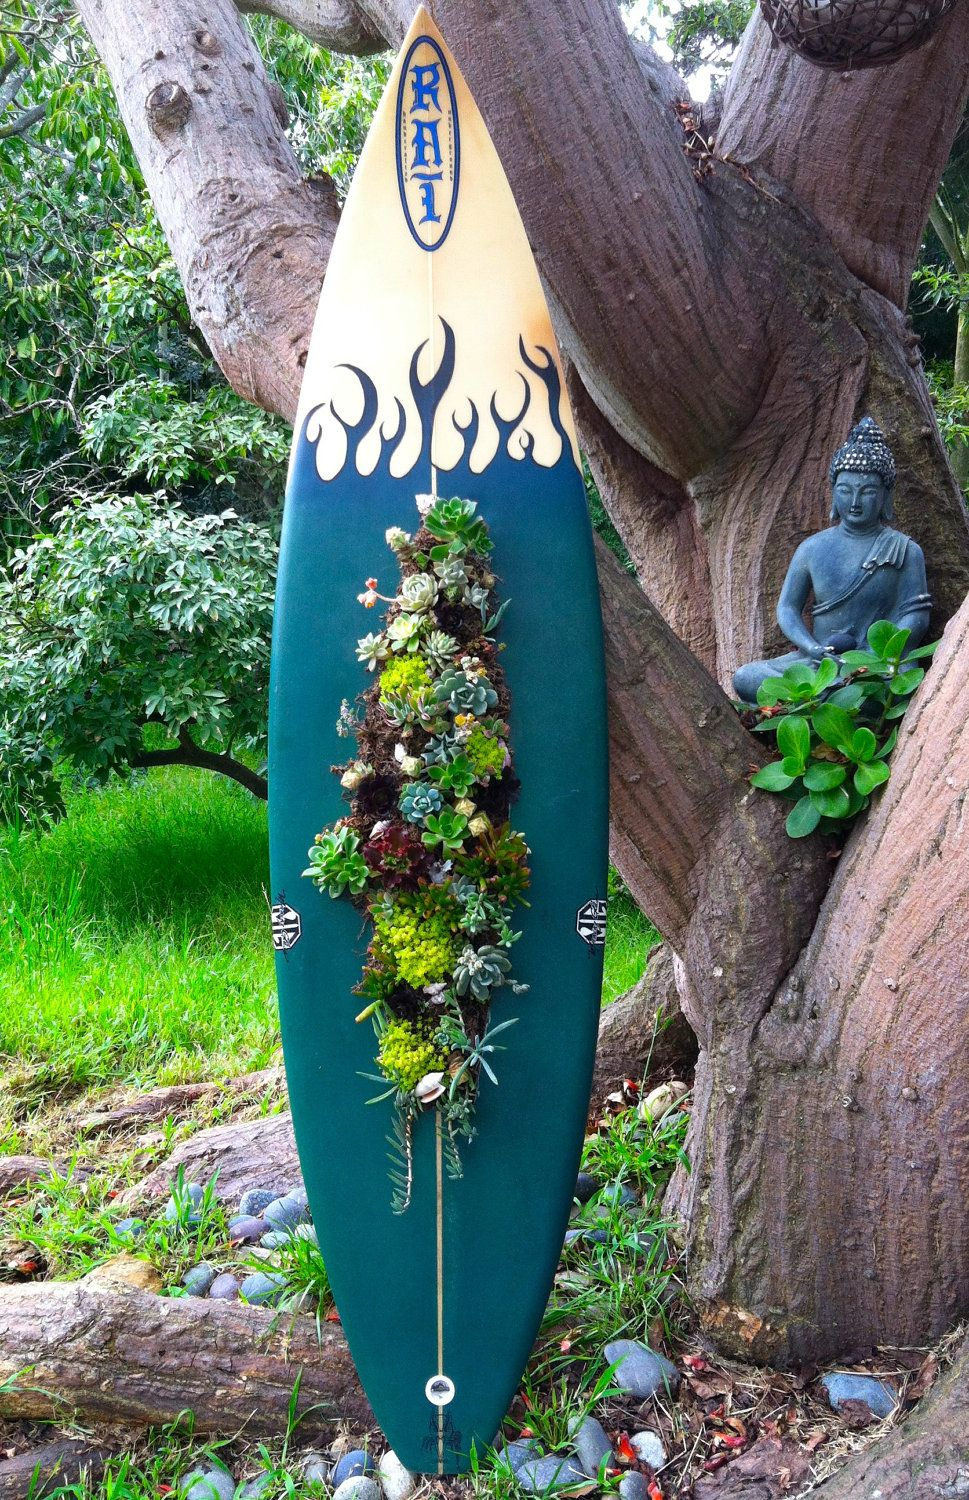 SURF'S UP Classic Surfboard Succulent Planter by bacchusgarden. $350.00, via Etsy.